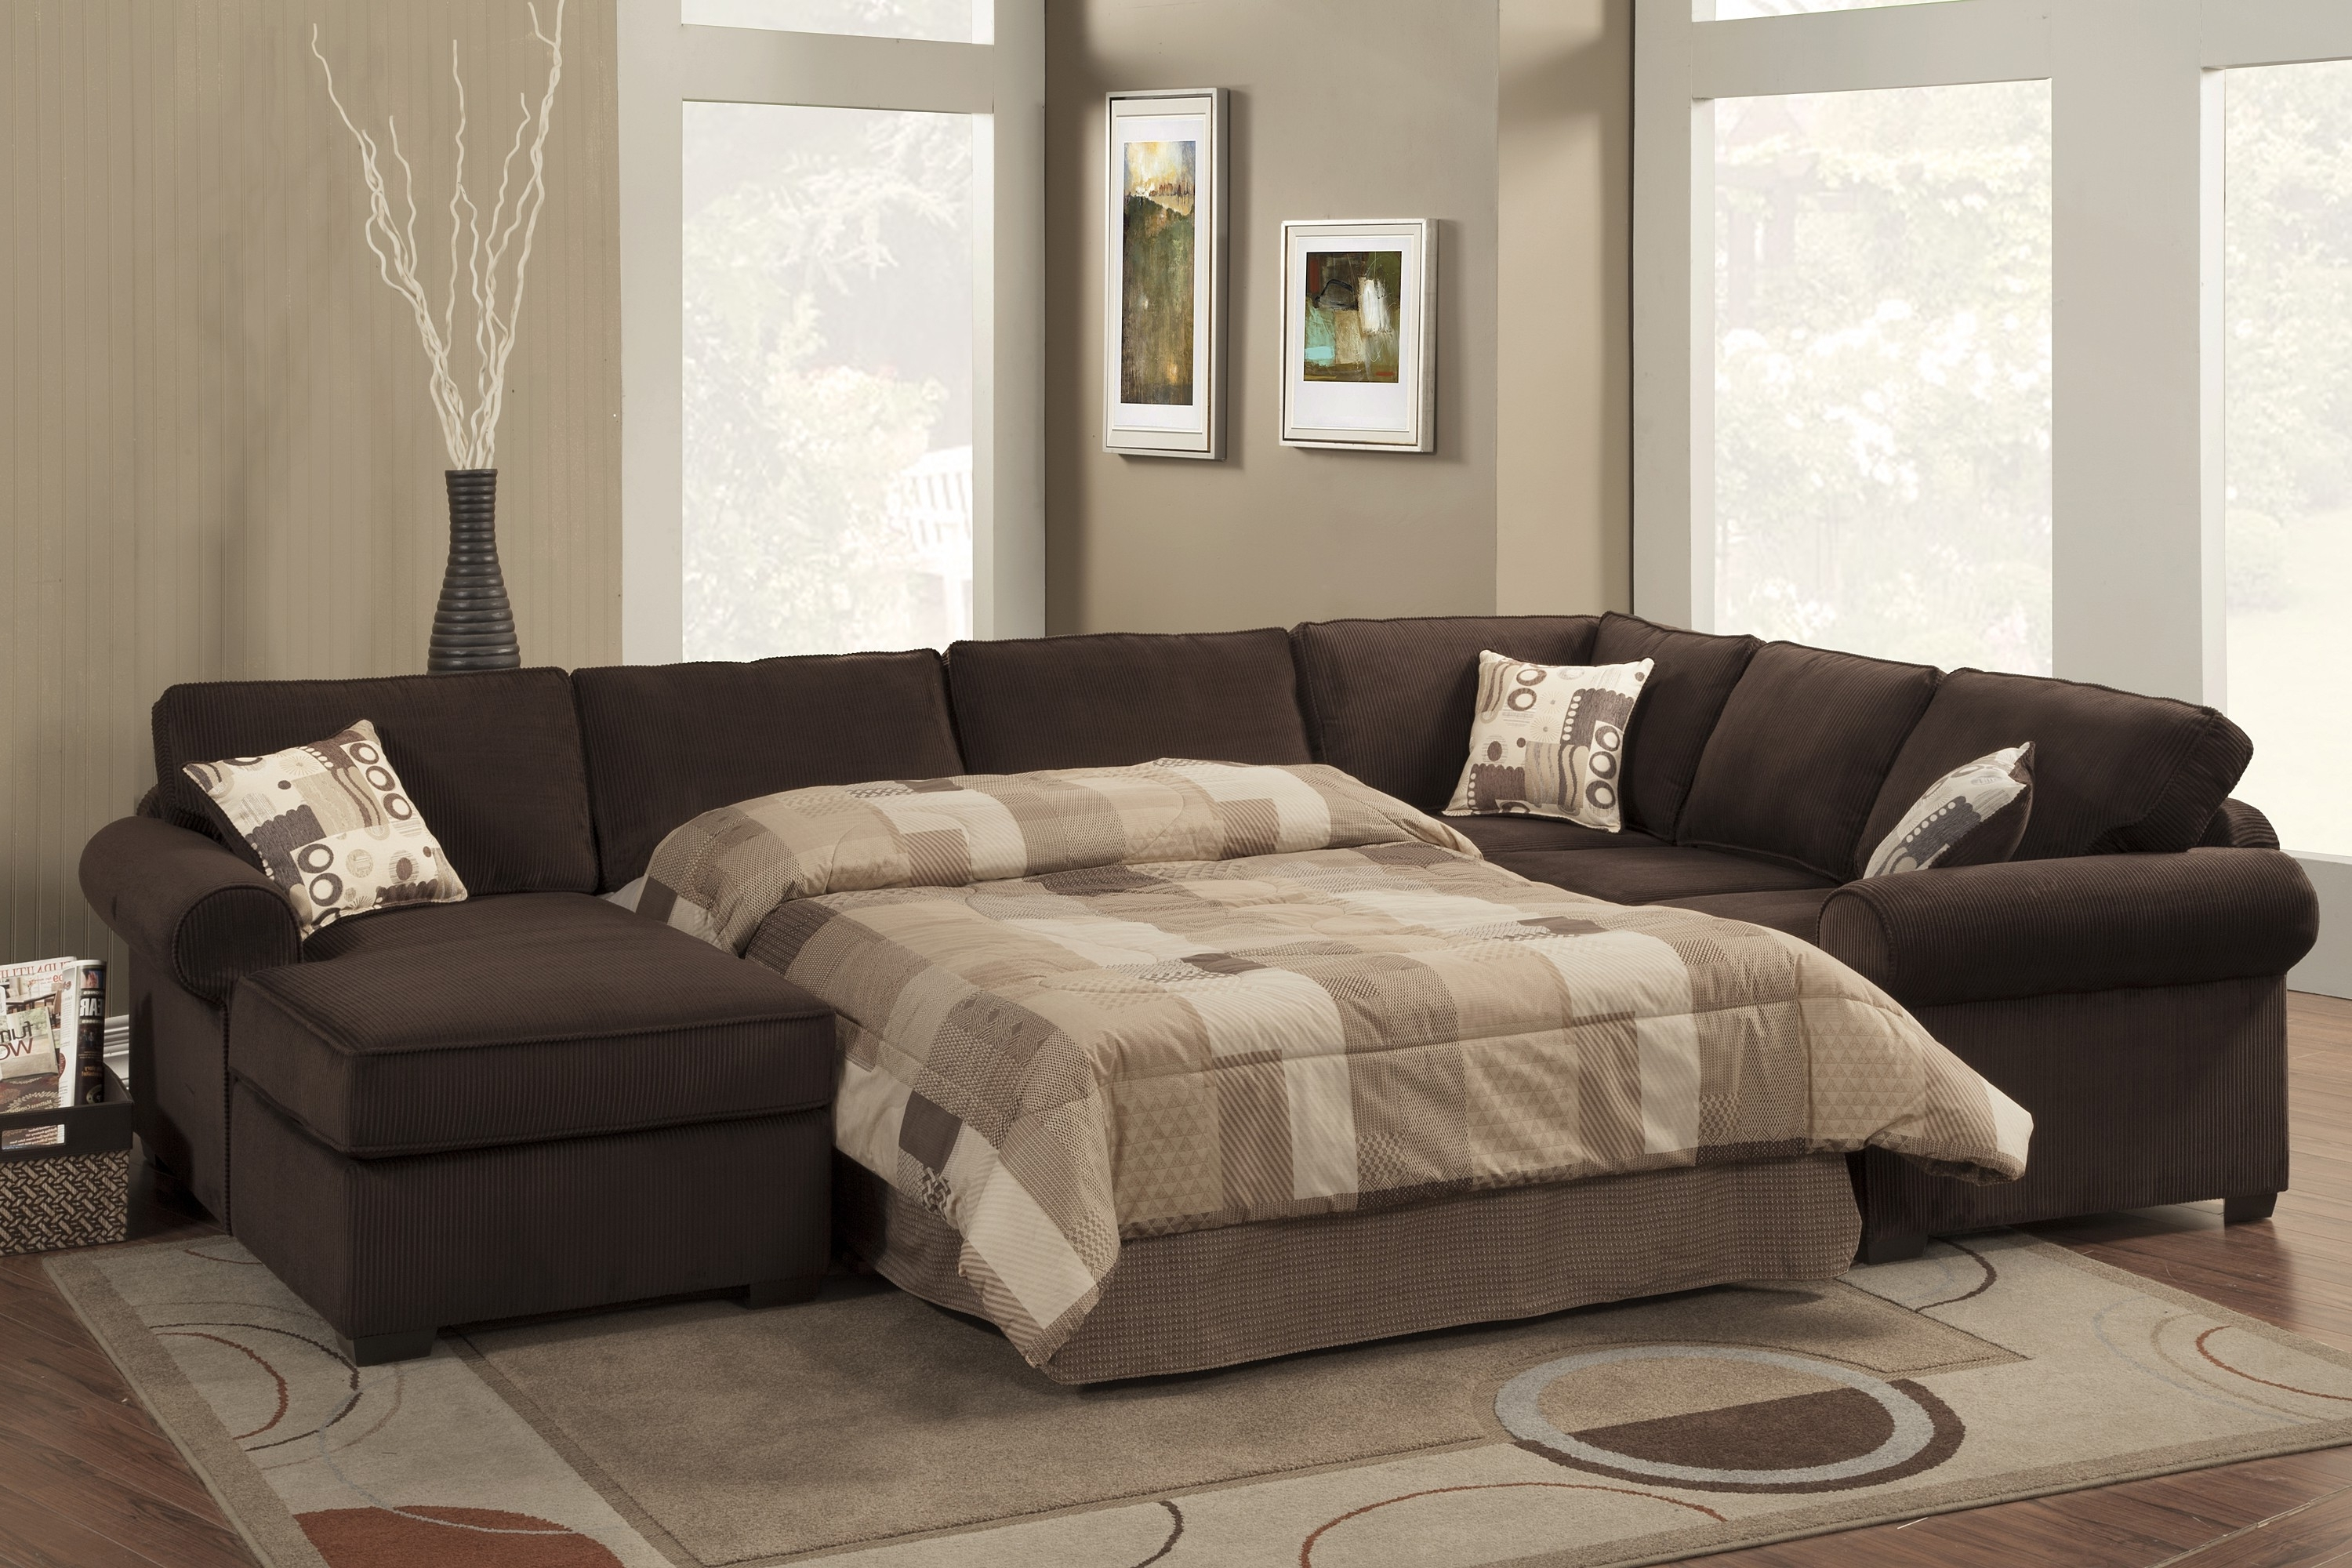 Cozy Sectional Sofas Pertaining To Newest Trend Cozy Sectional Sofas 27 On Sofa Design Ideas With Cozy (View 1 of 15)